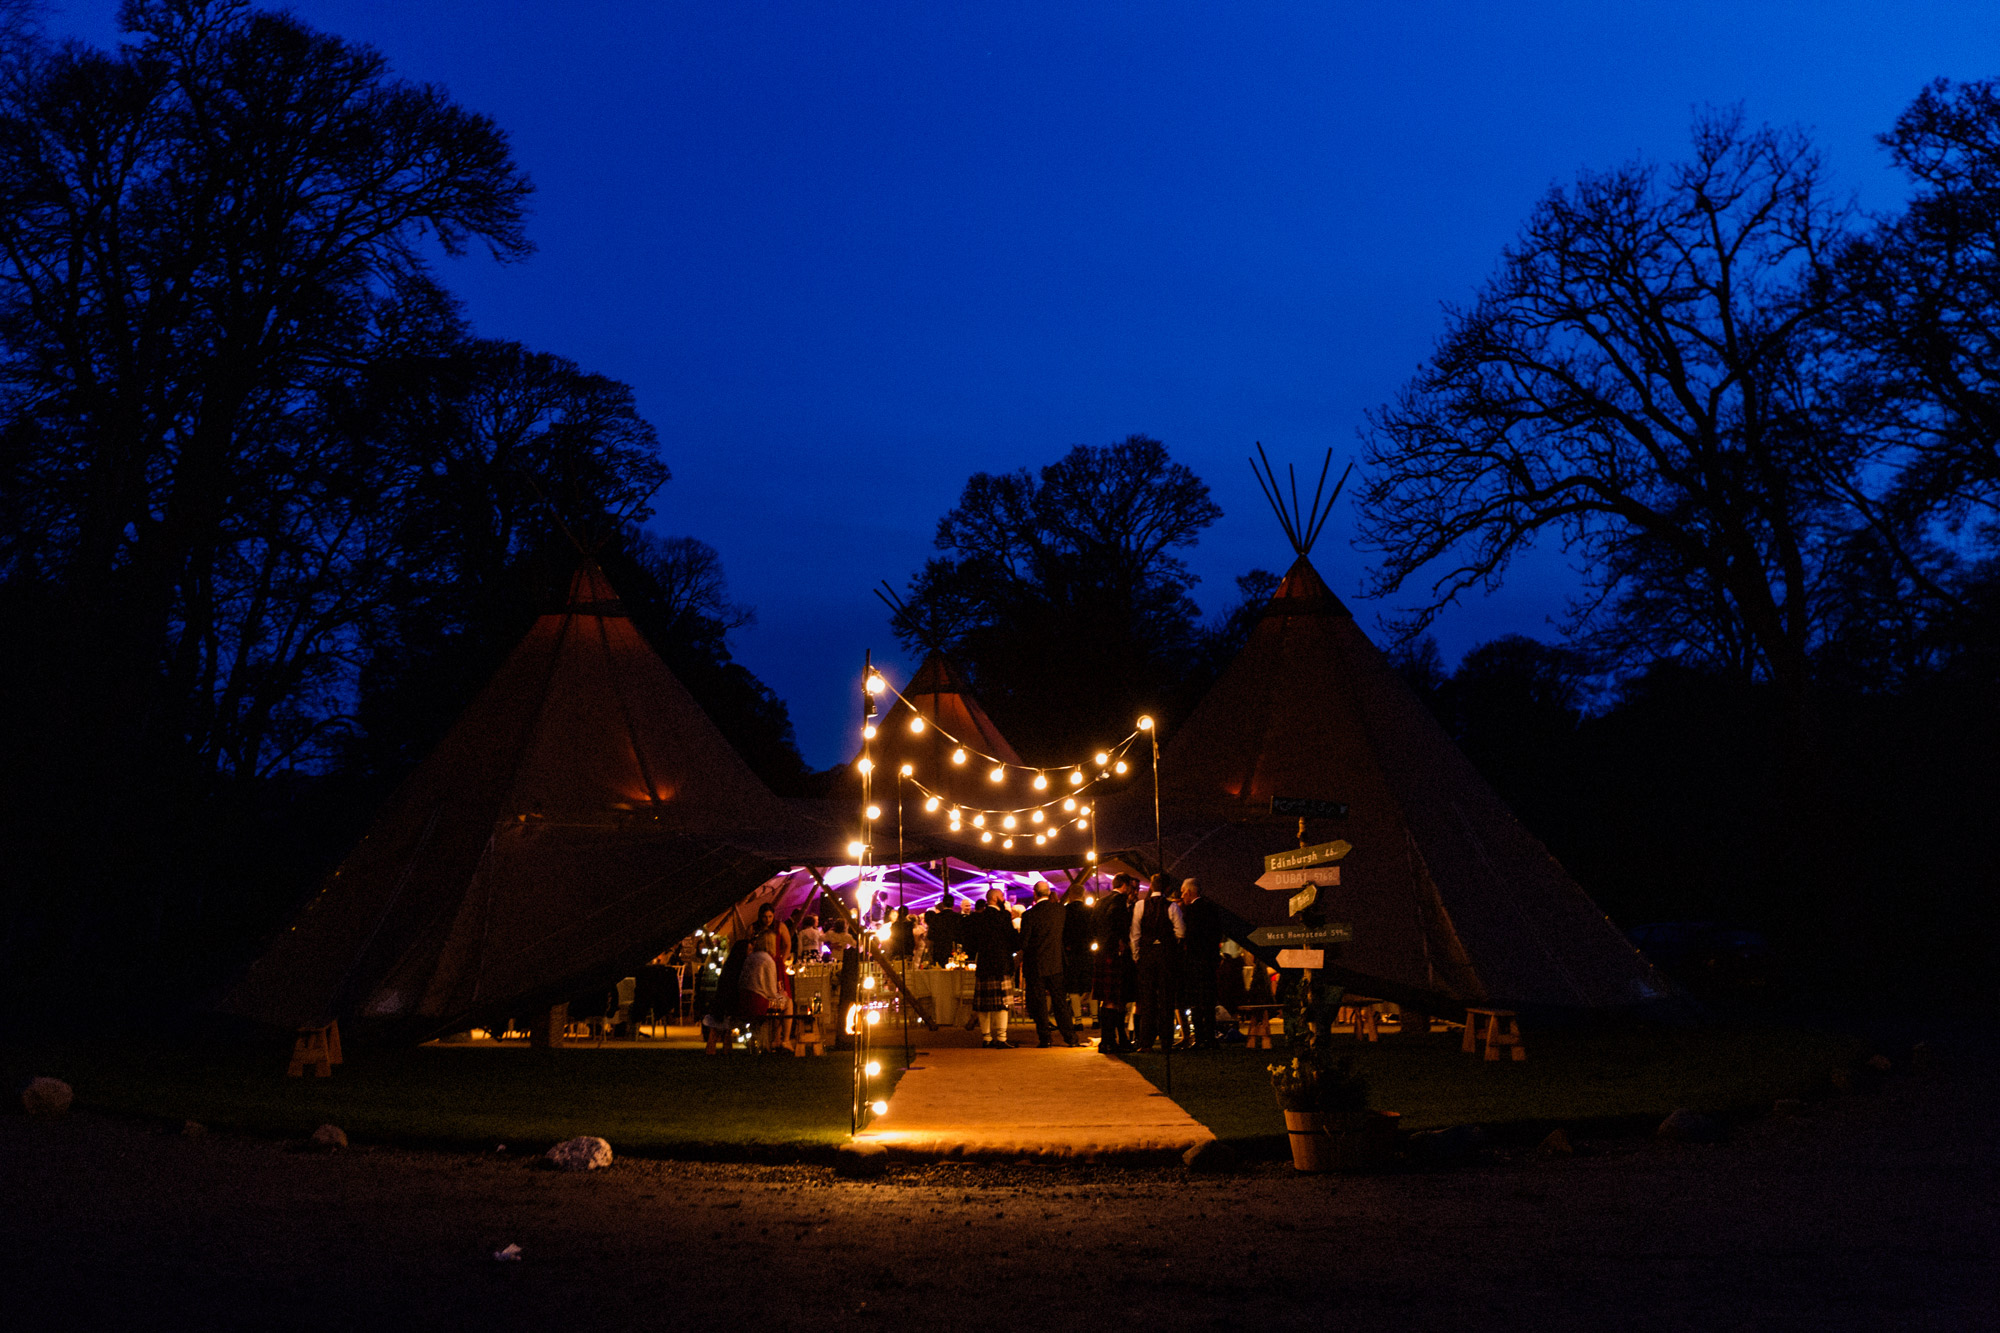 night scene at teepee wedding scotland